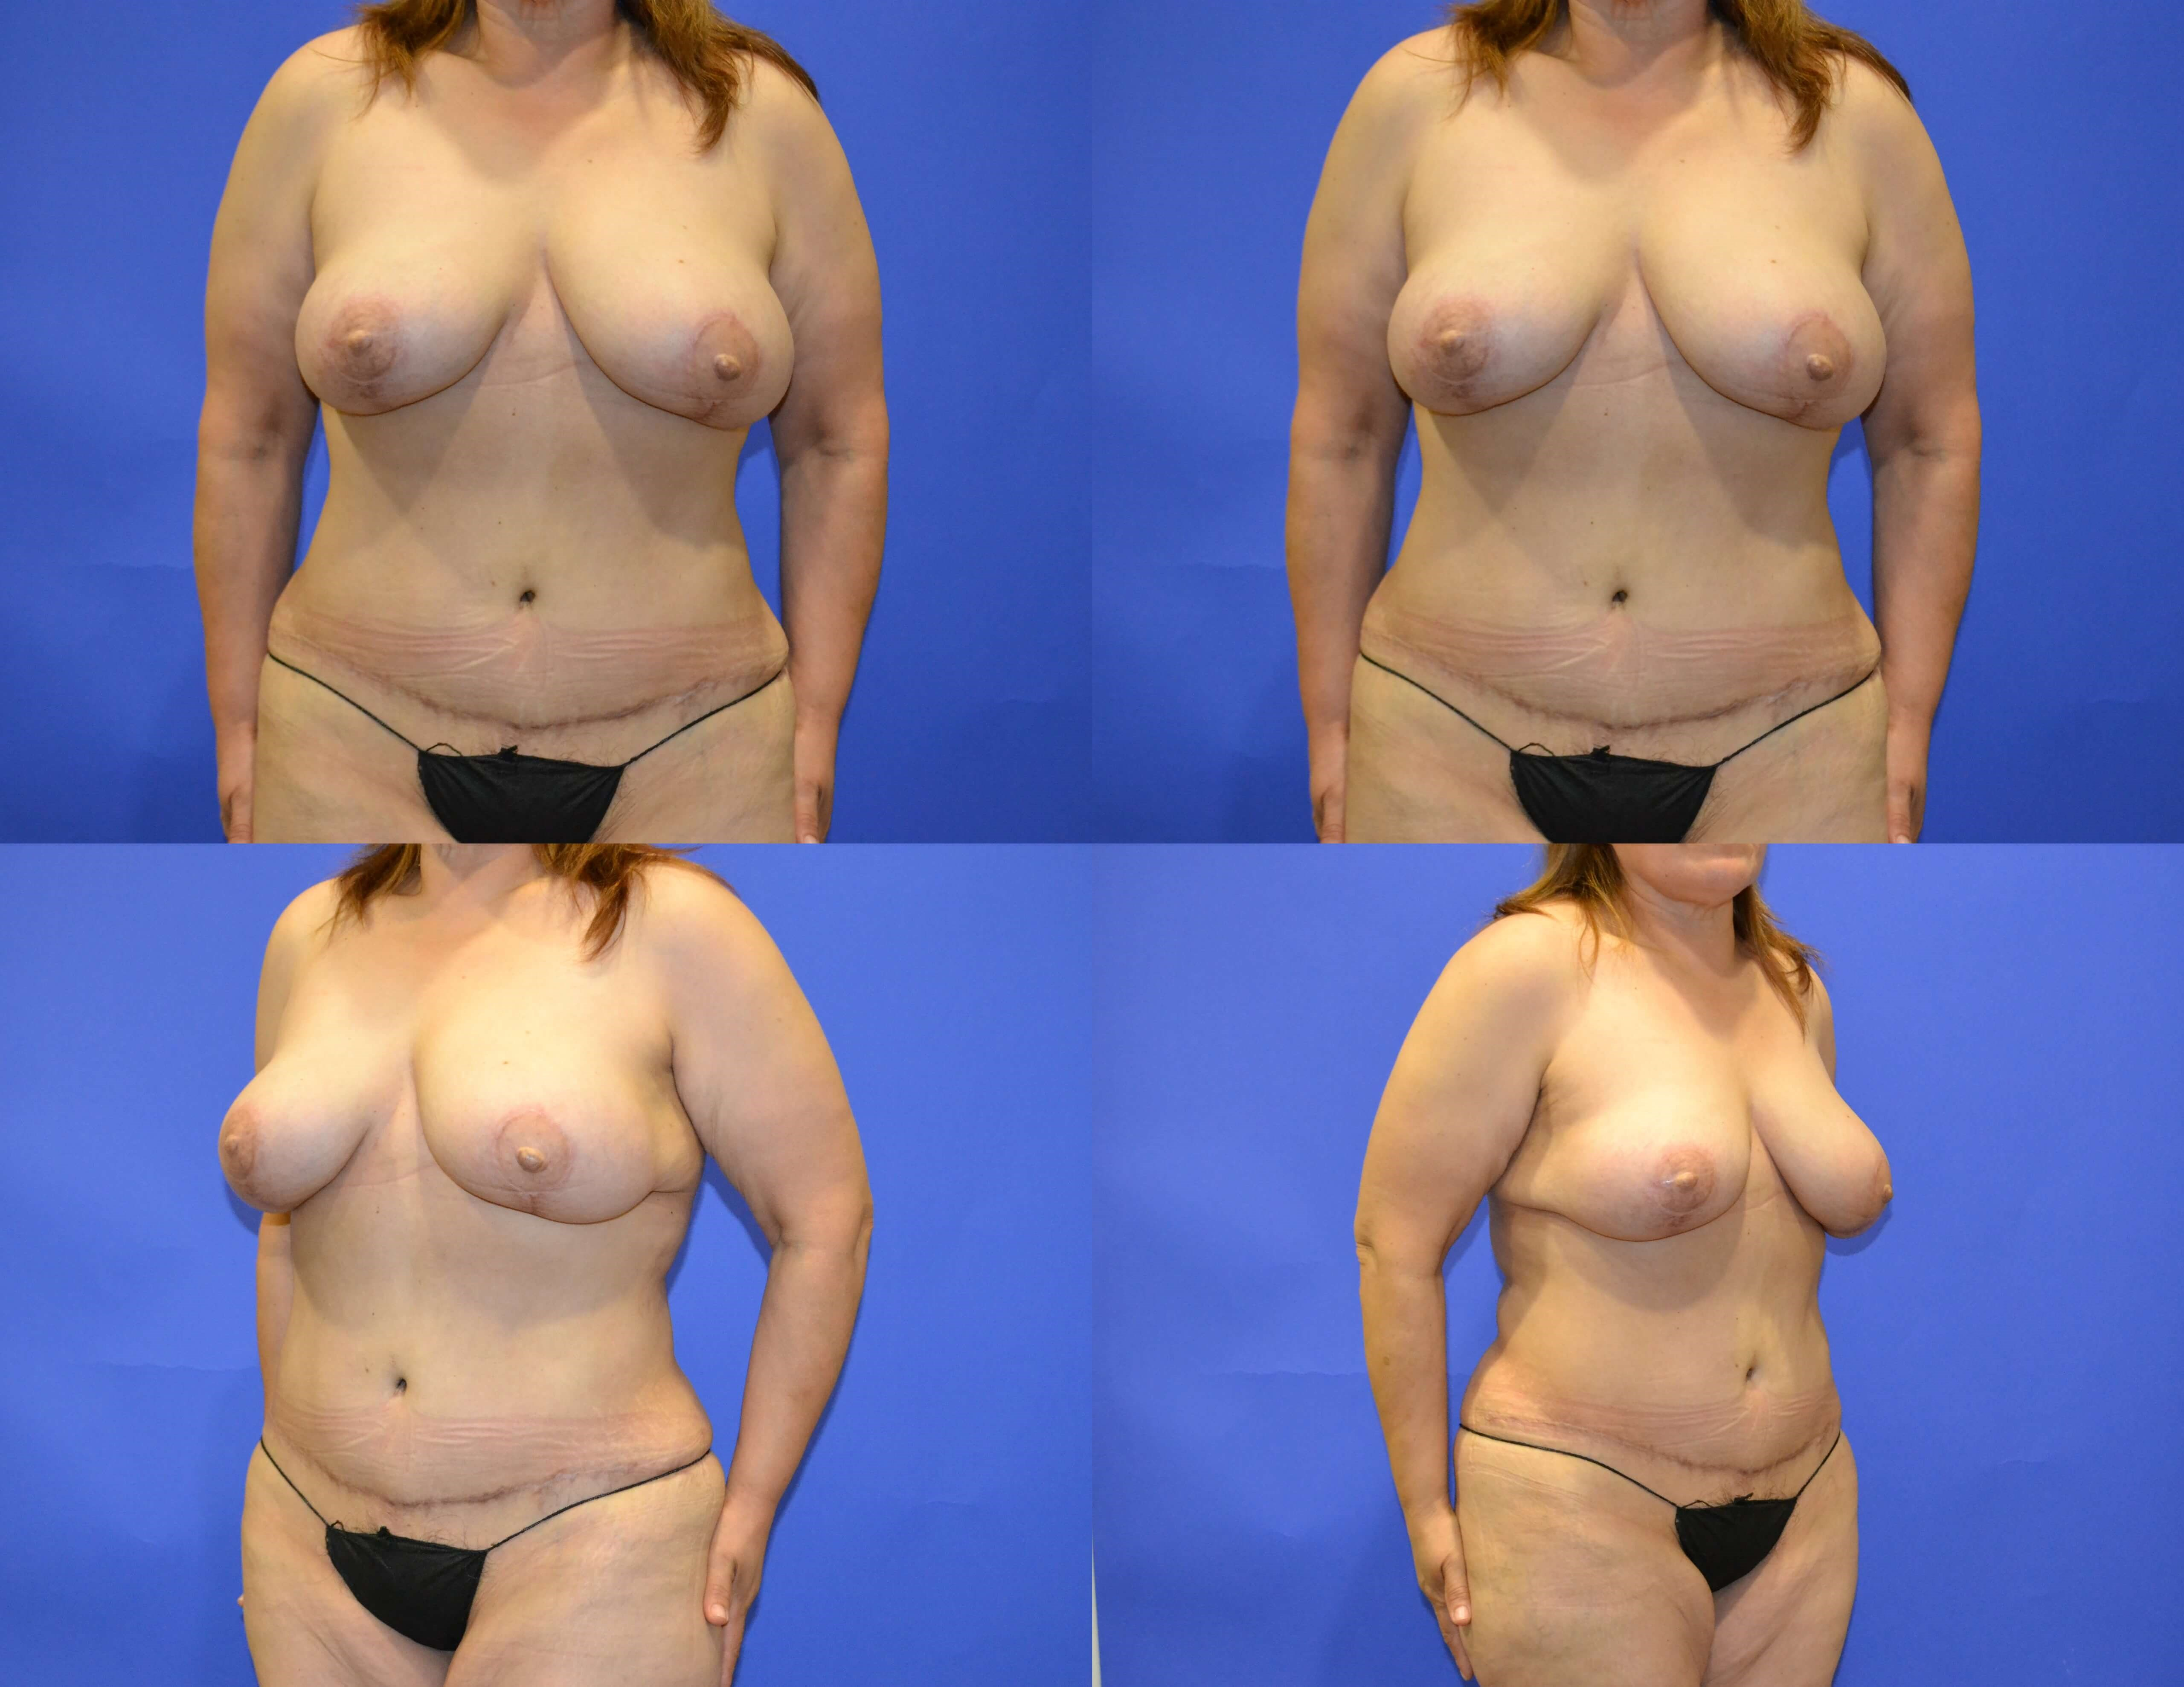 Breast Reconstruction - Front After - Final Stage